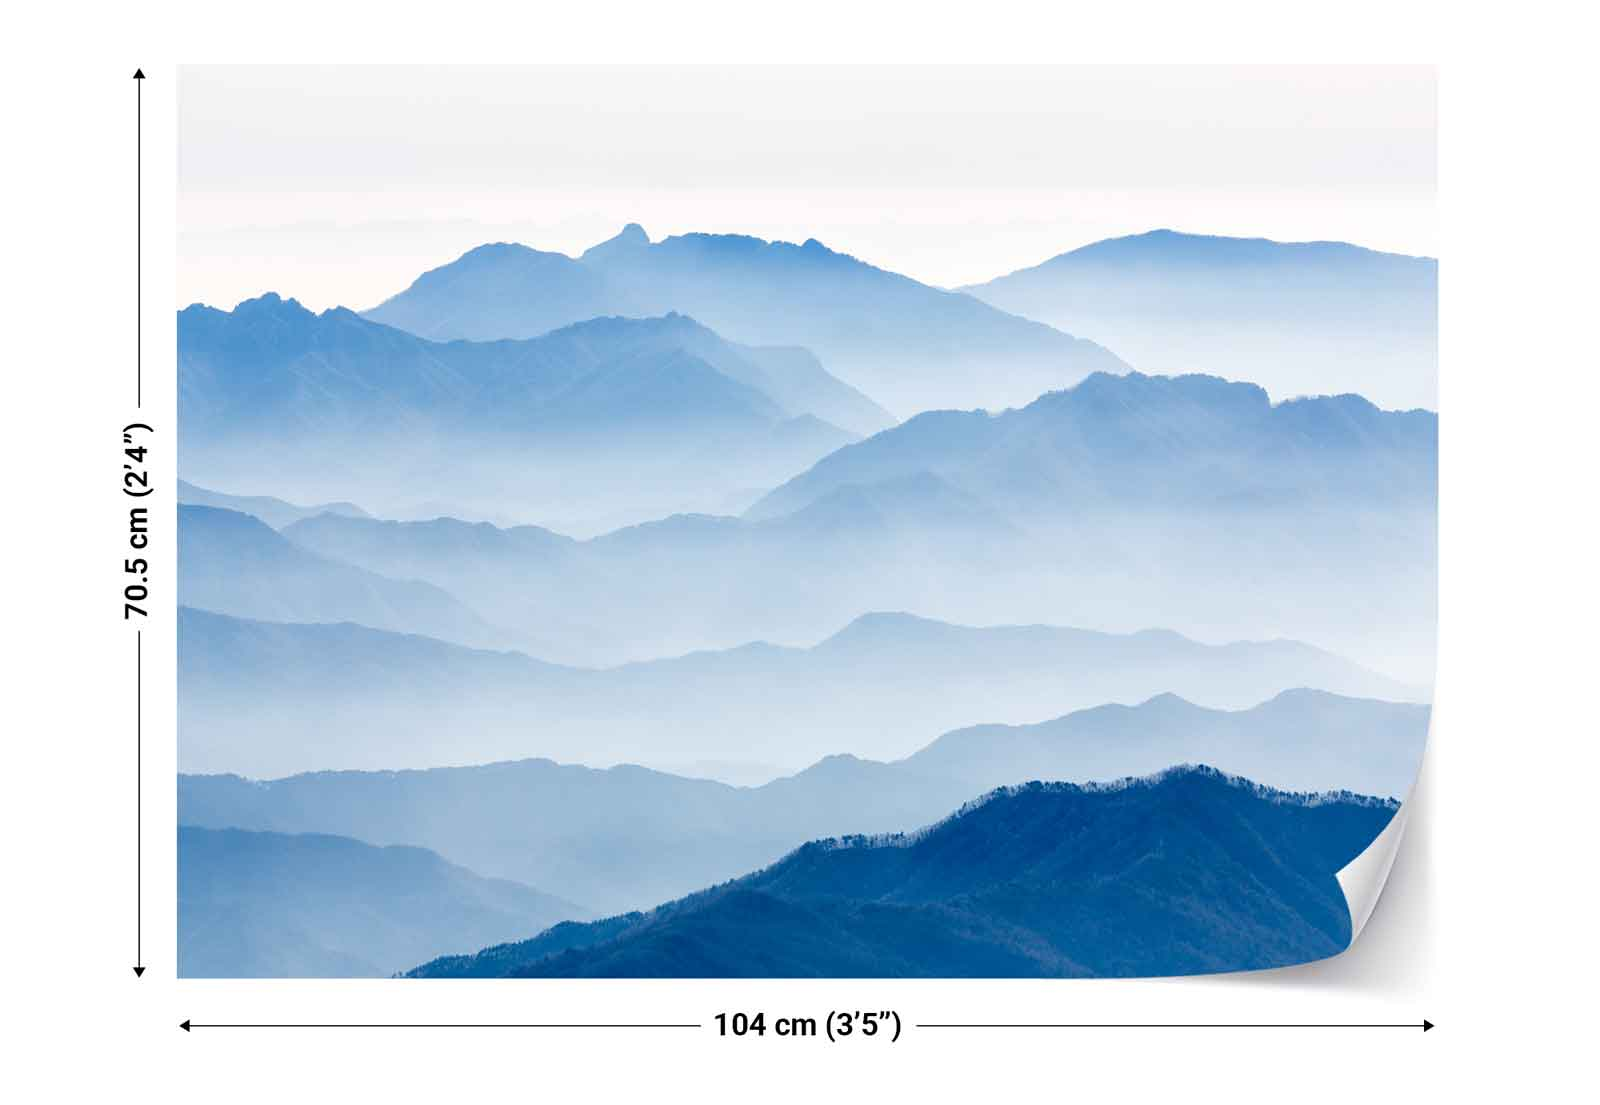 mountain range layers mist photo wallpaper wall mural 1x. Black Bedroom Furniture Sets. Home Design Ideas